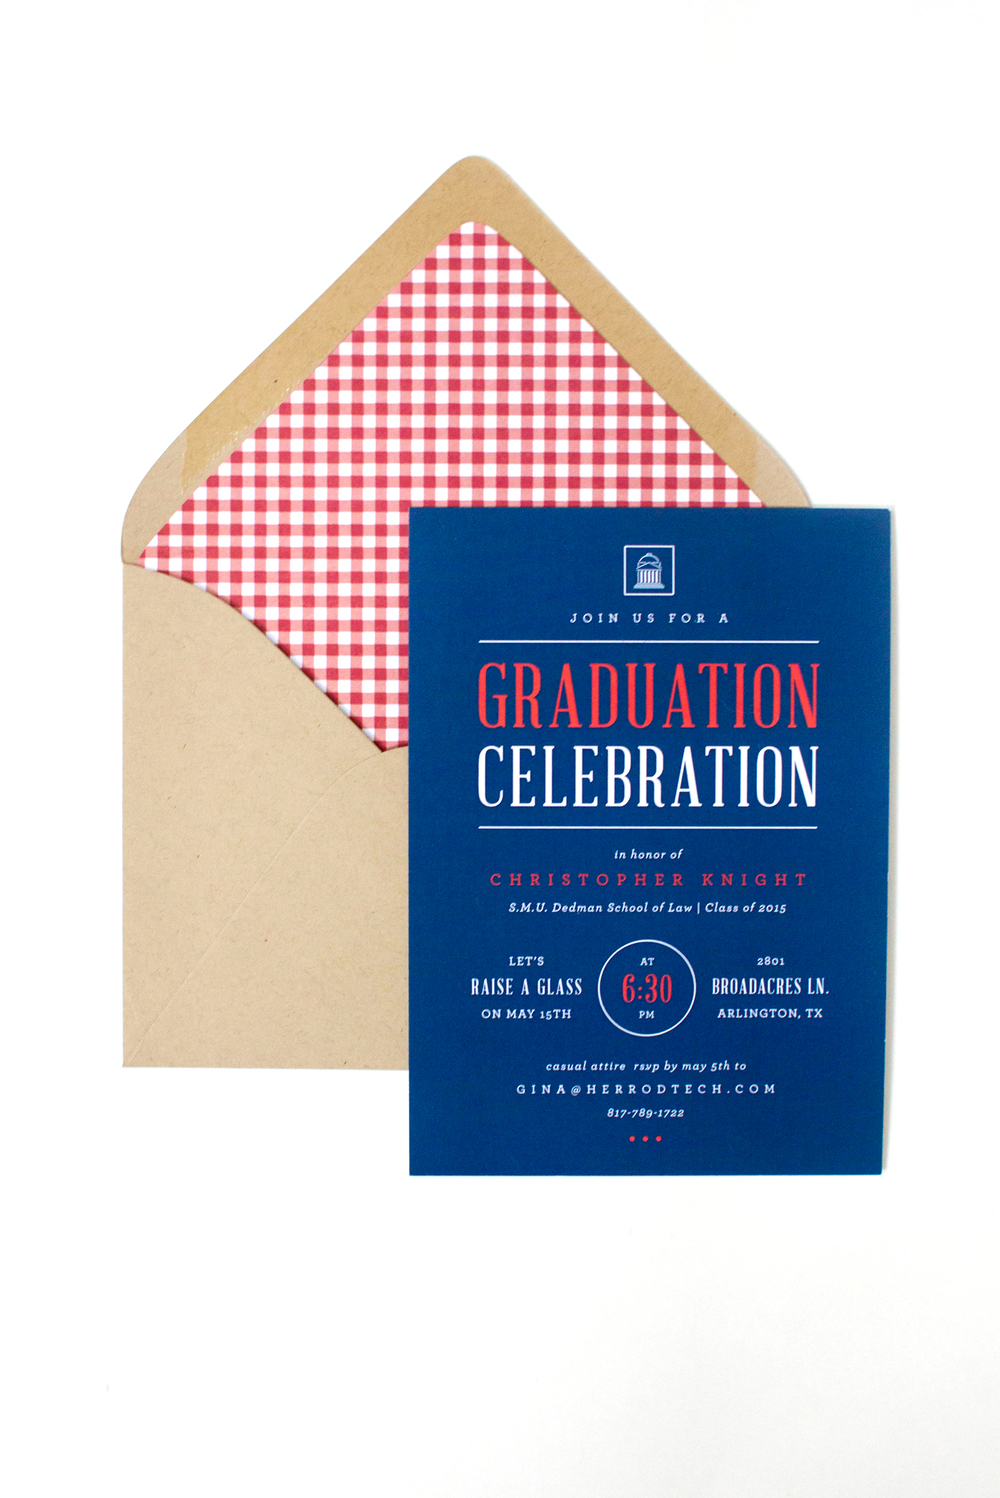 Law School Graduation Party Invitations - that's pretty ace